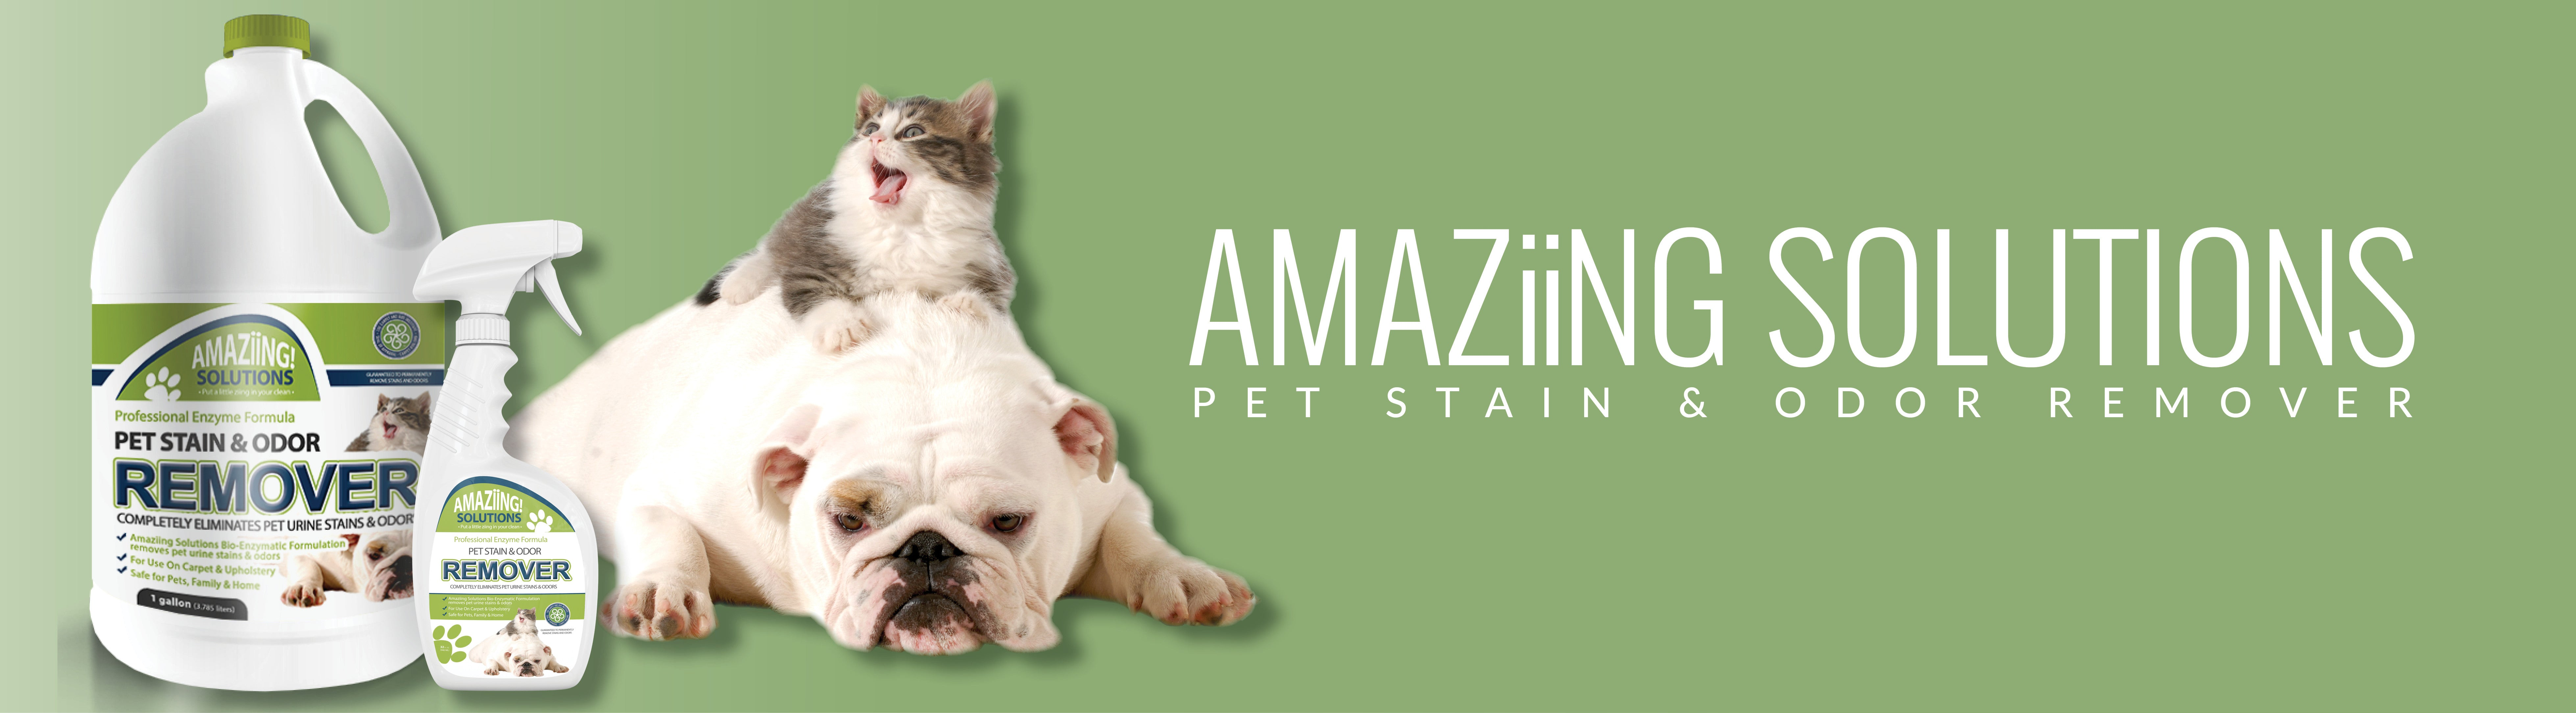 Amaziing Solutions Pet Stain & Odor Remover